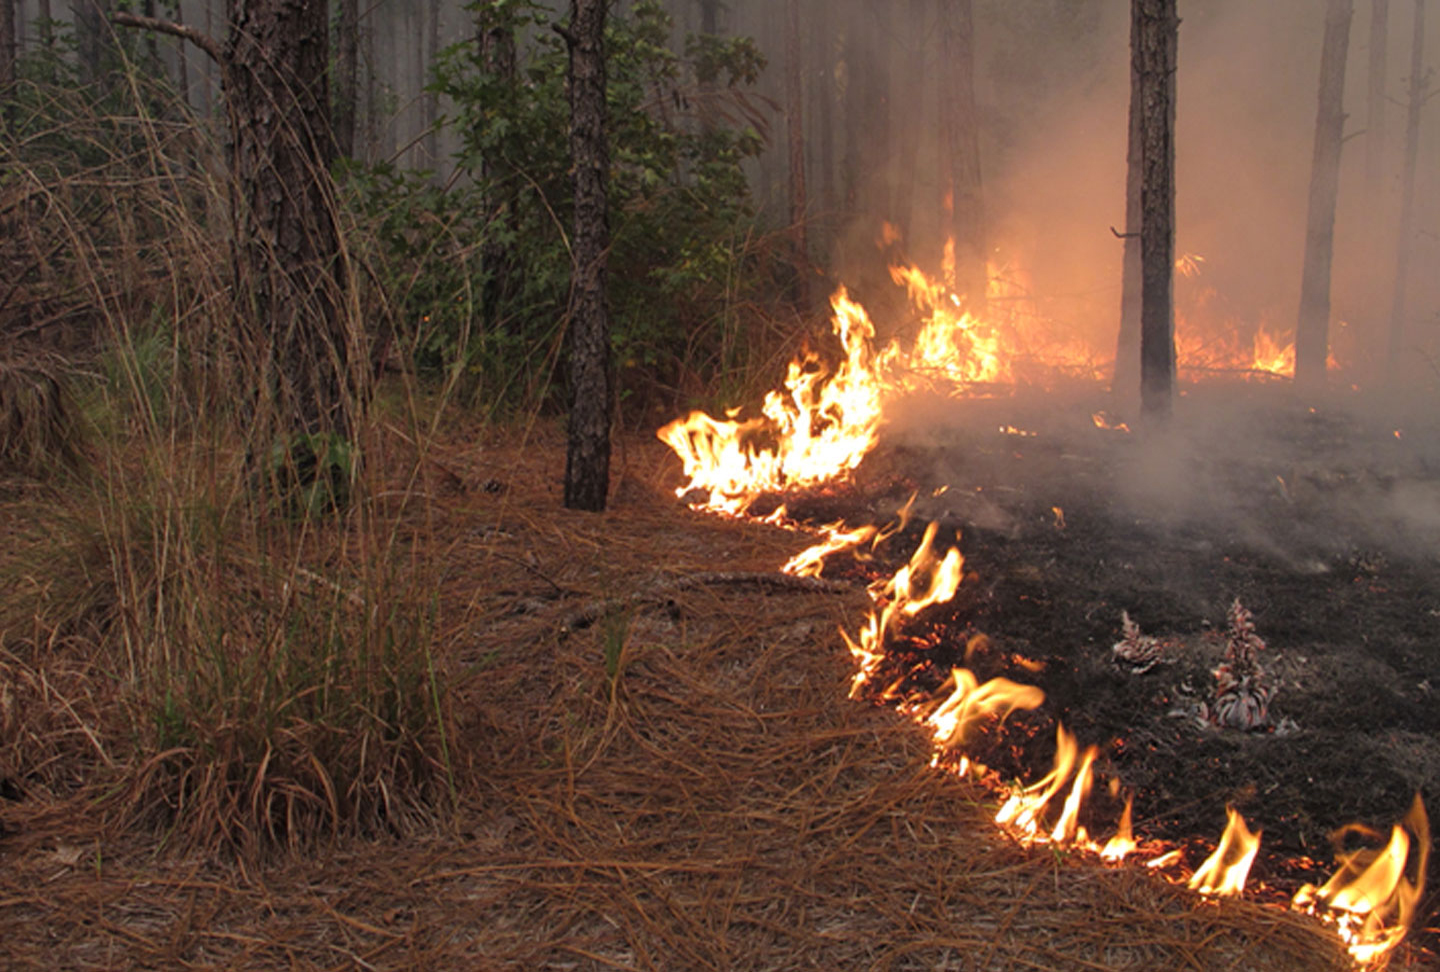 Photo of small flames from prescribed fire in a forest